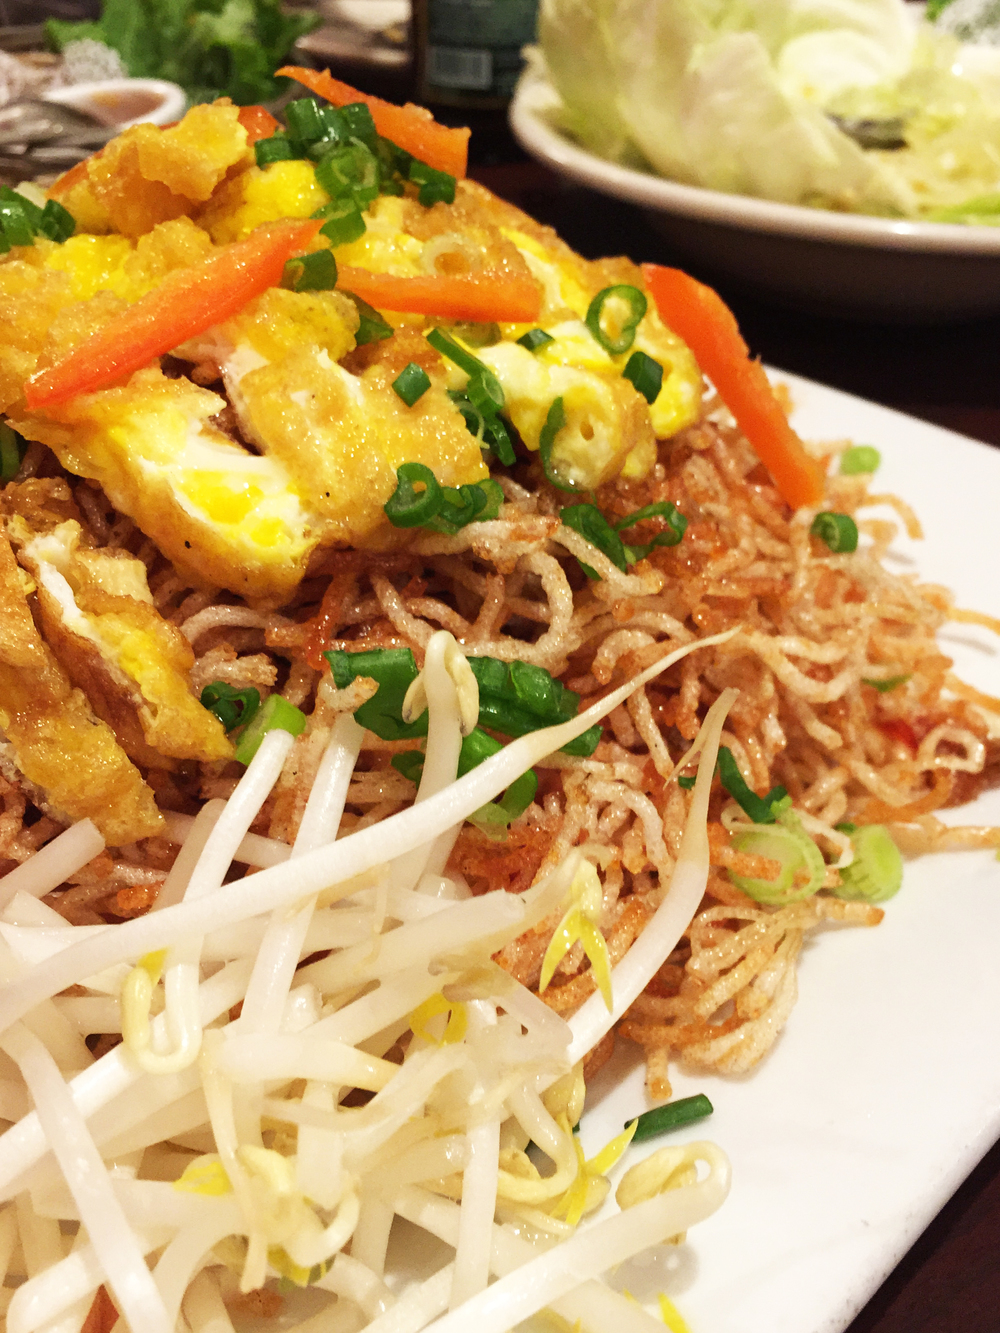 MEE-GROB - Sweet and sour pan-fried crunchy rice noodles, topped with sliced chicken, tofu, egg, and shrimp.